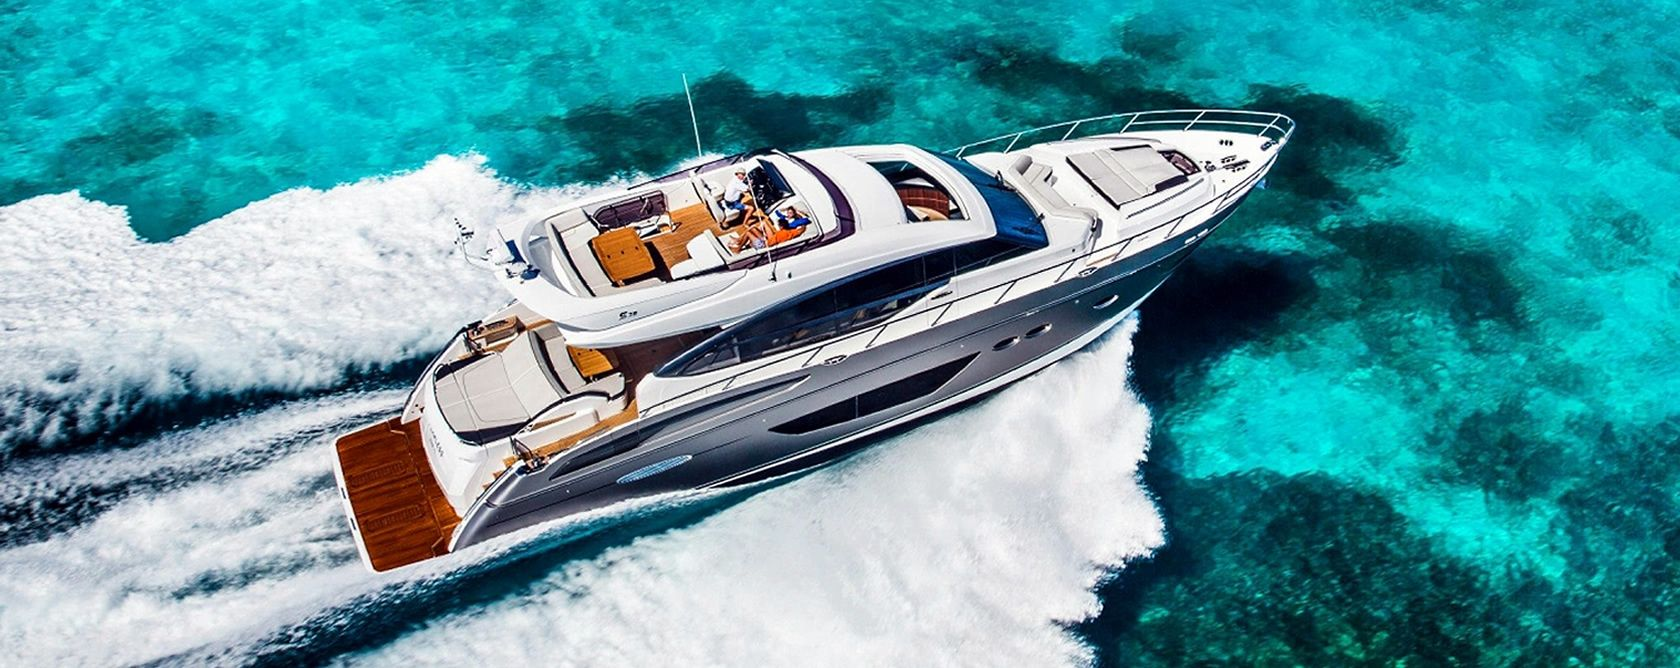 Miami Five Star Is The 1 Miami Yacht Charters Luxury Boat